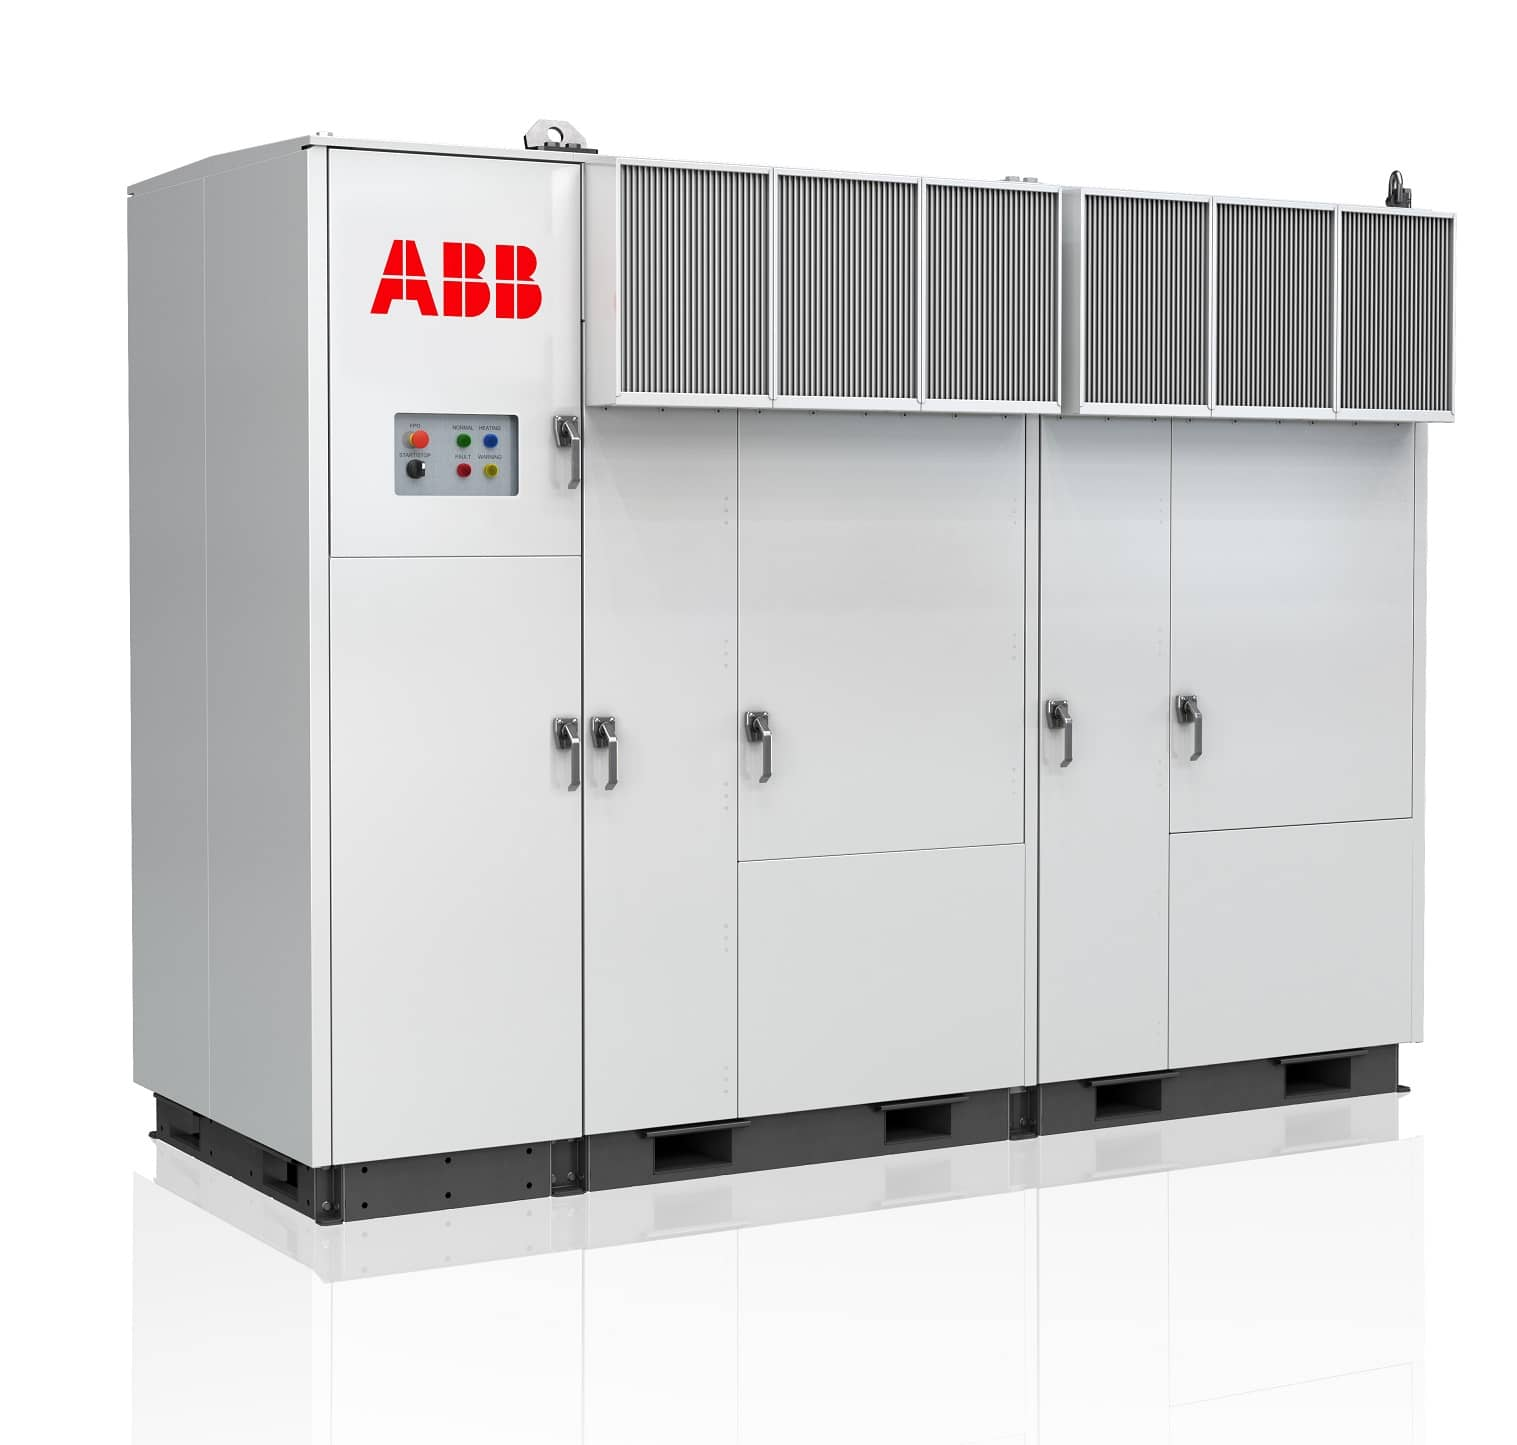 abb ABB Links Massive Solar Project To Indian Grid